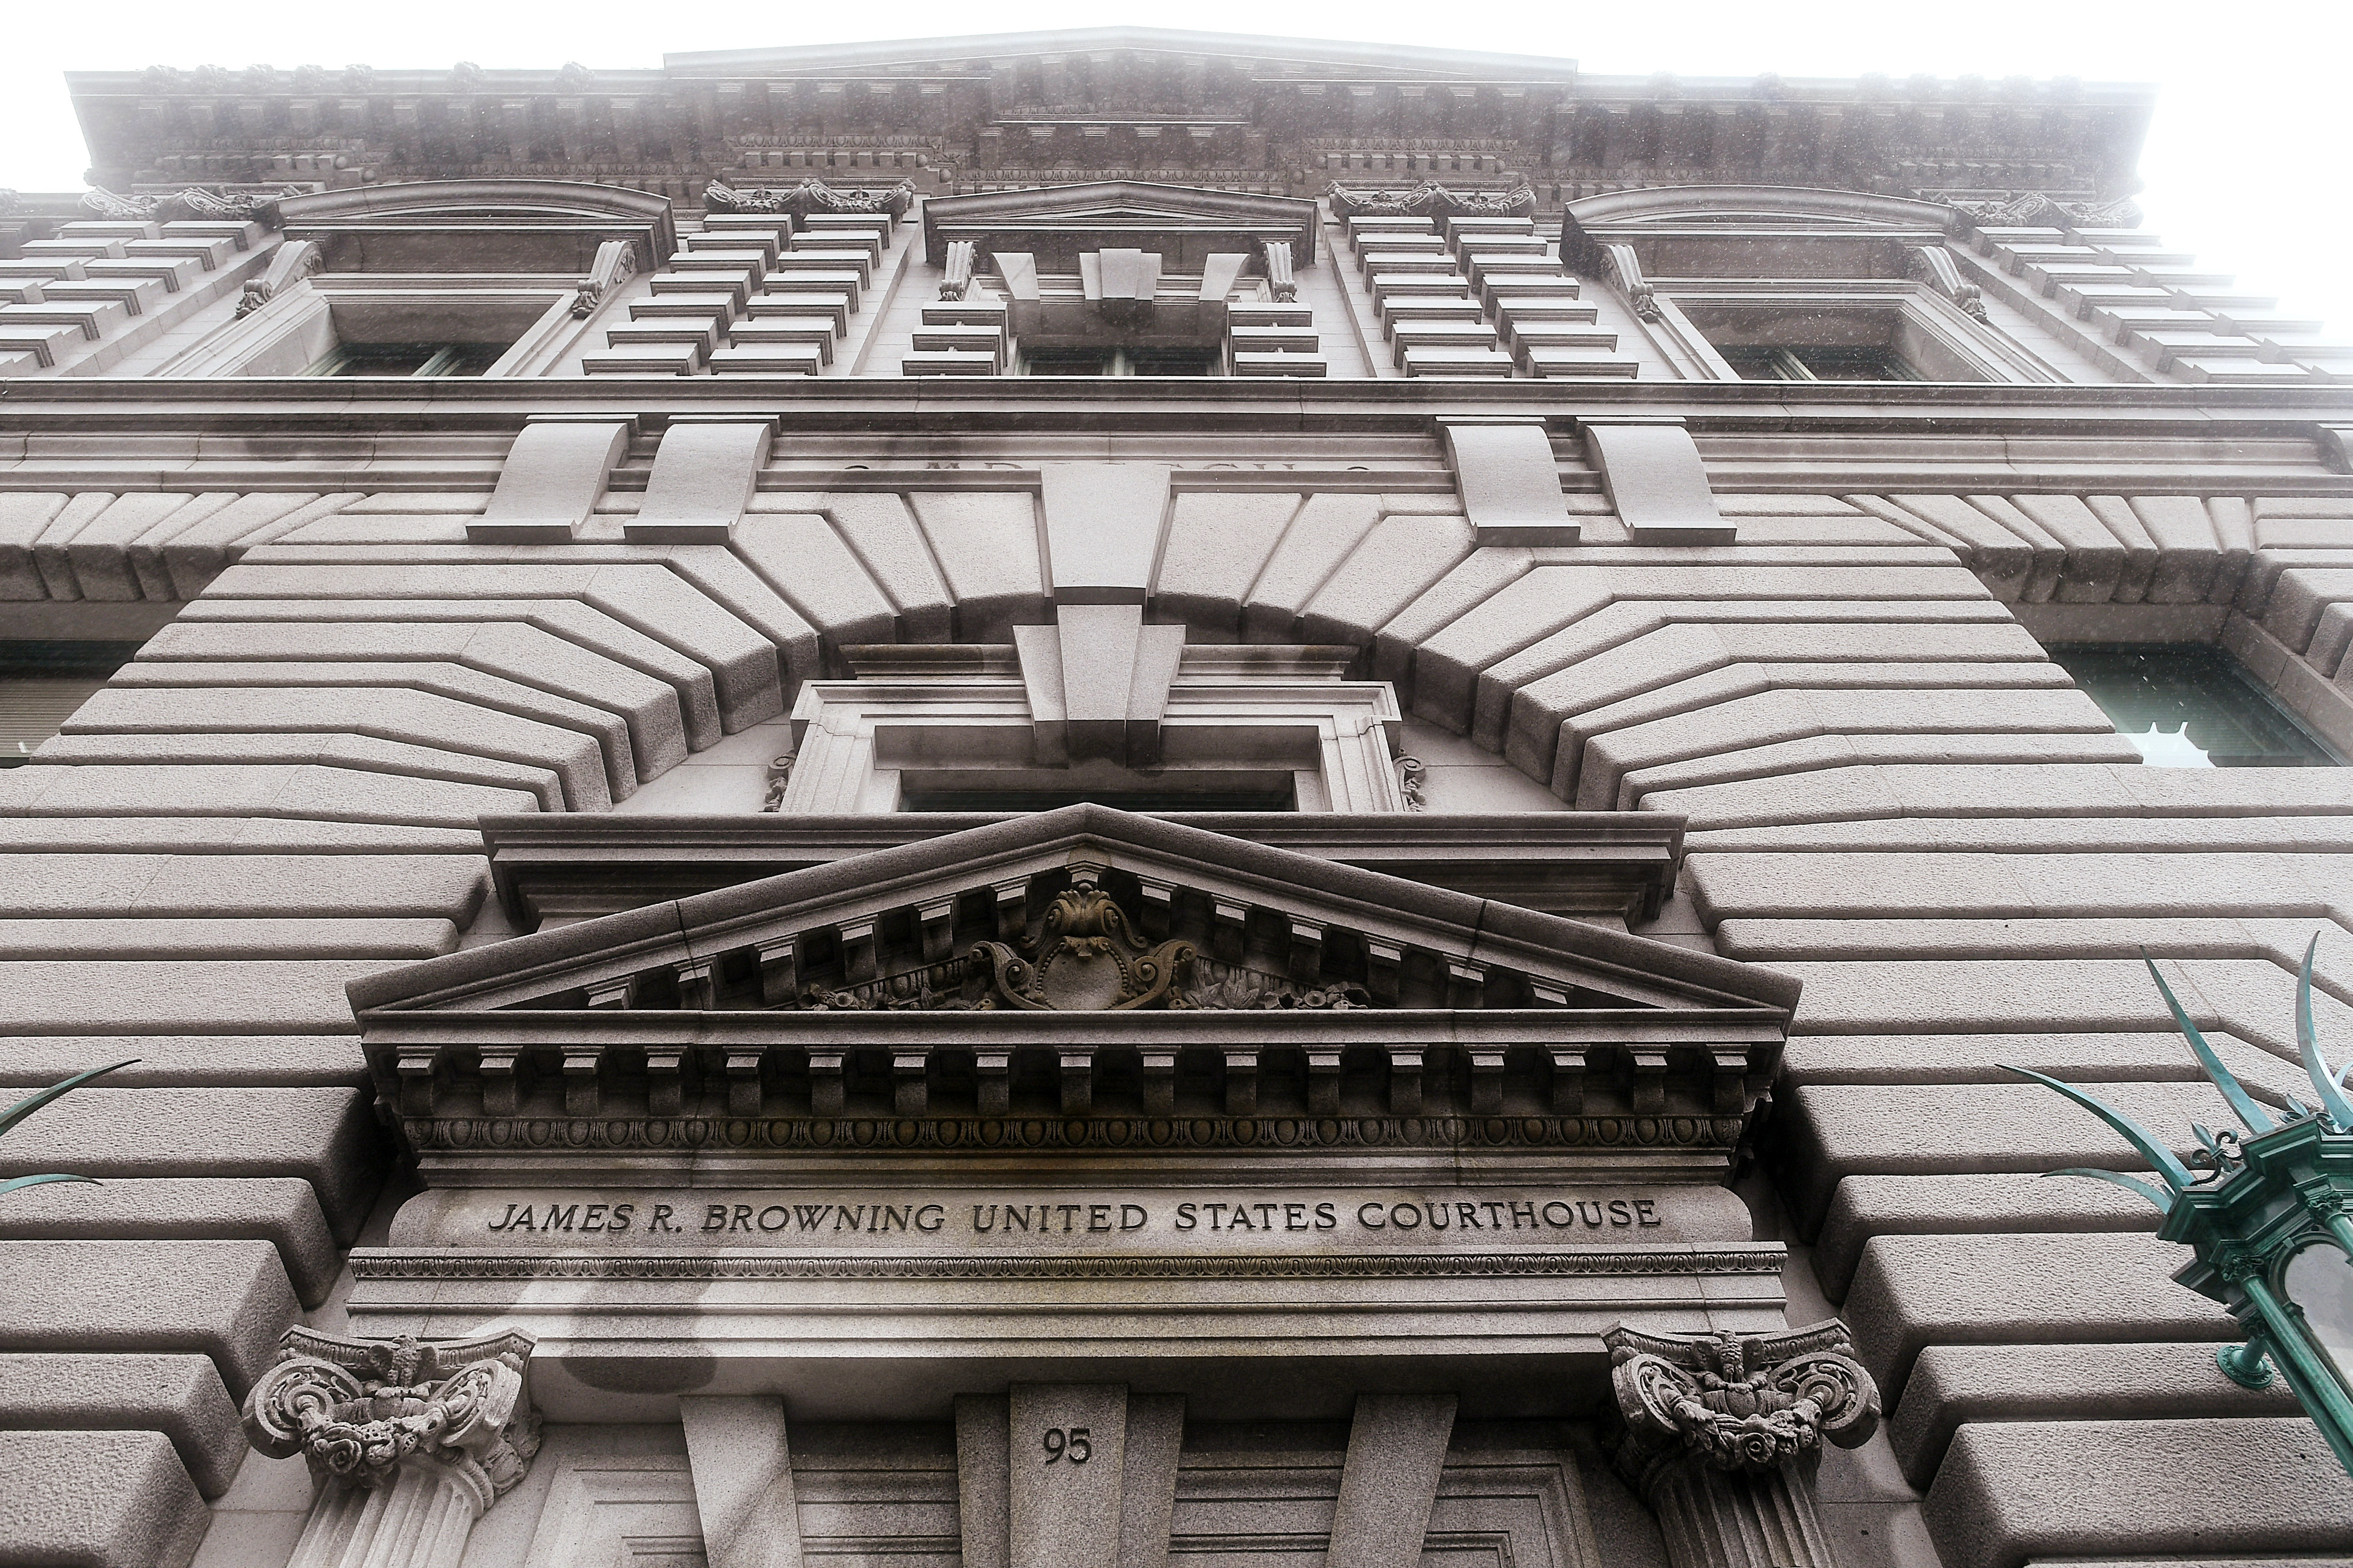 FILE - The James R. Browning U.S. Court of Appeals Building, home of the 9th U.S. Circuit Court of Appeals, is pictured in San Francisco, California, Feb. 7, 2017.